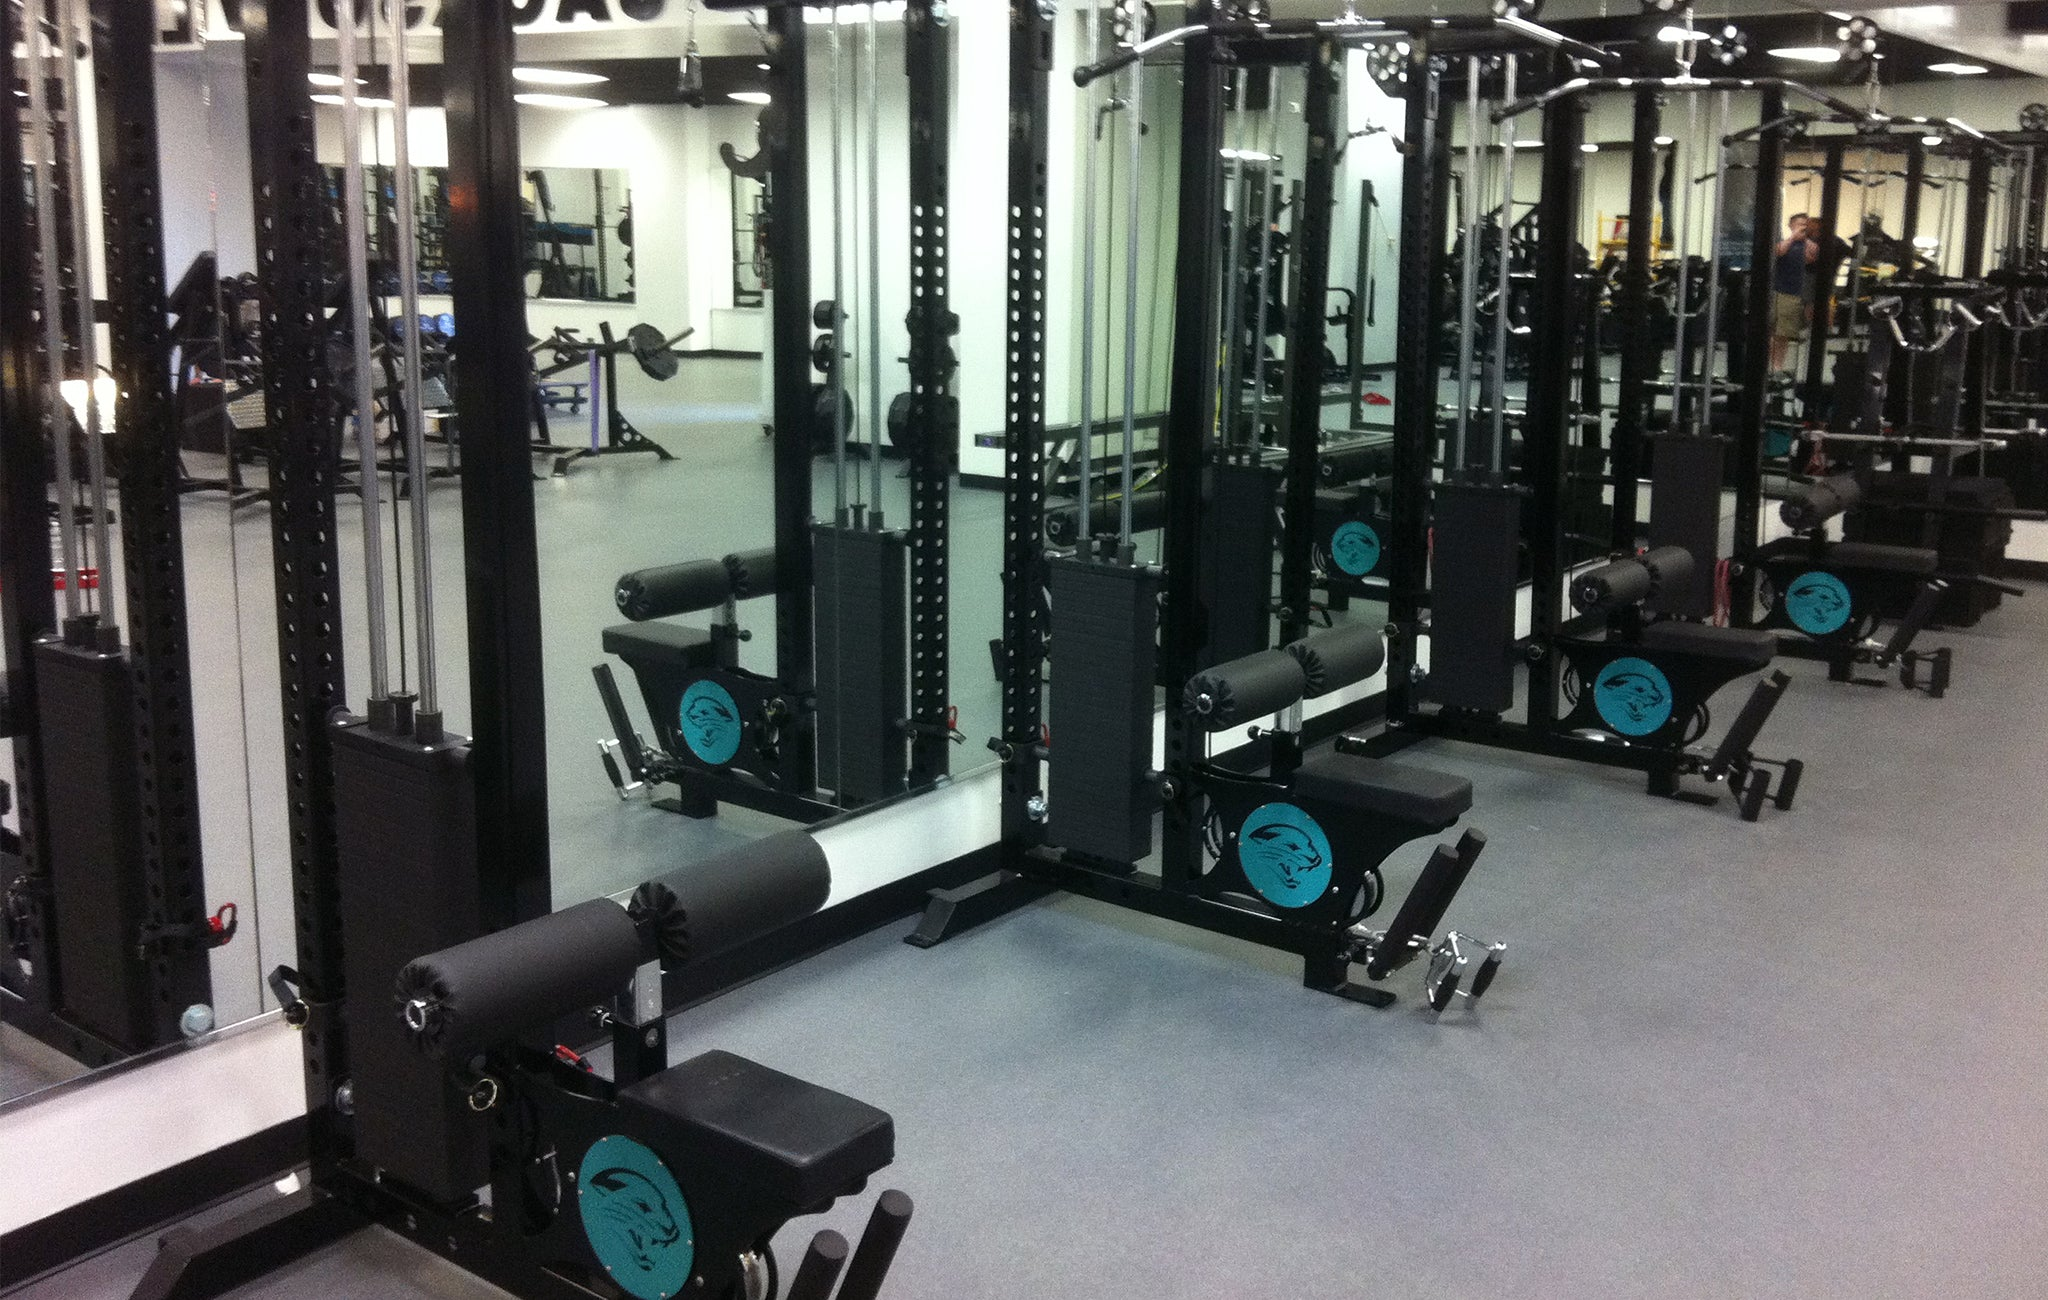 Jacksonville Jaguars training center